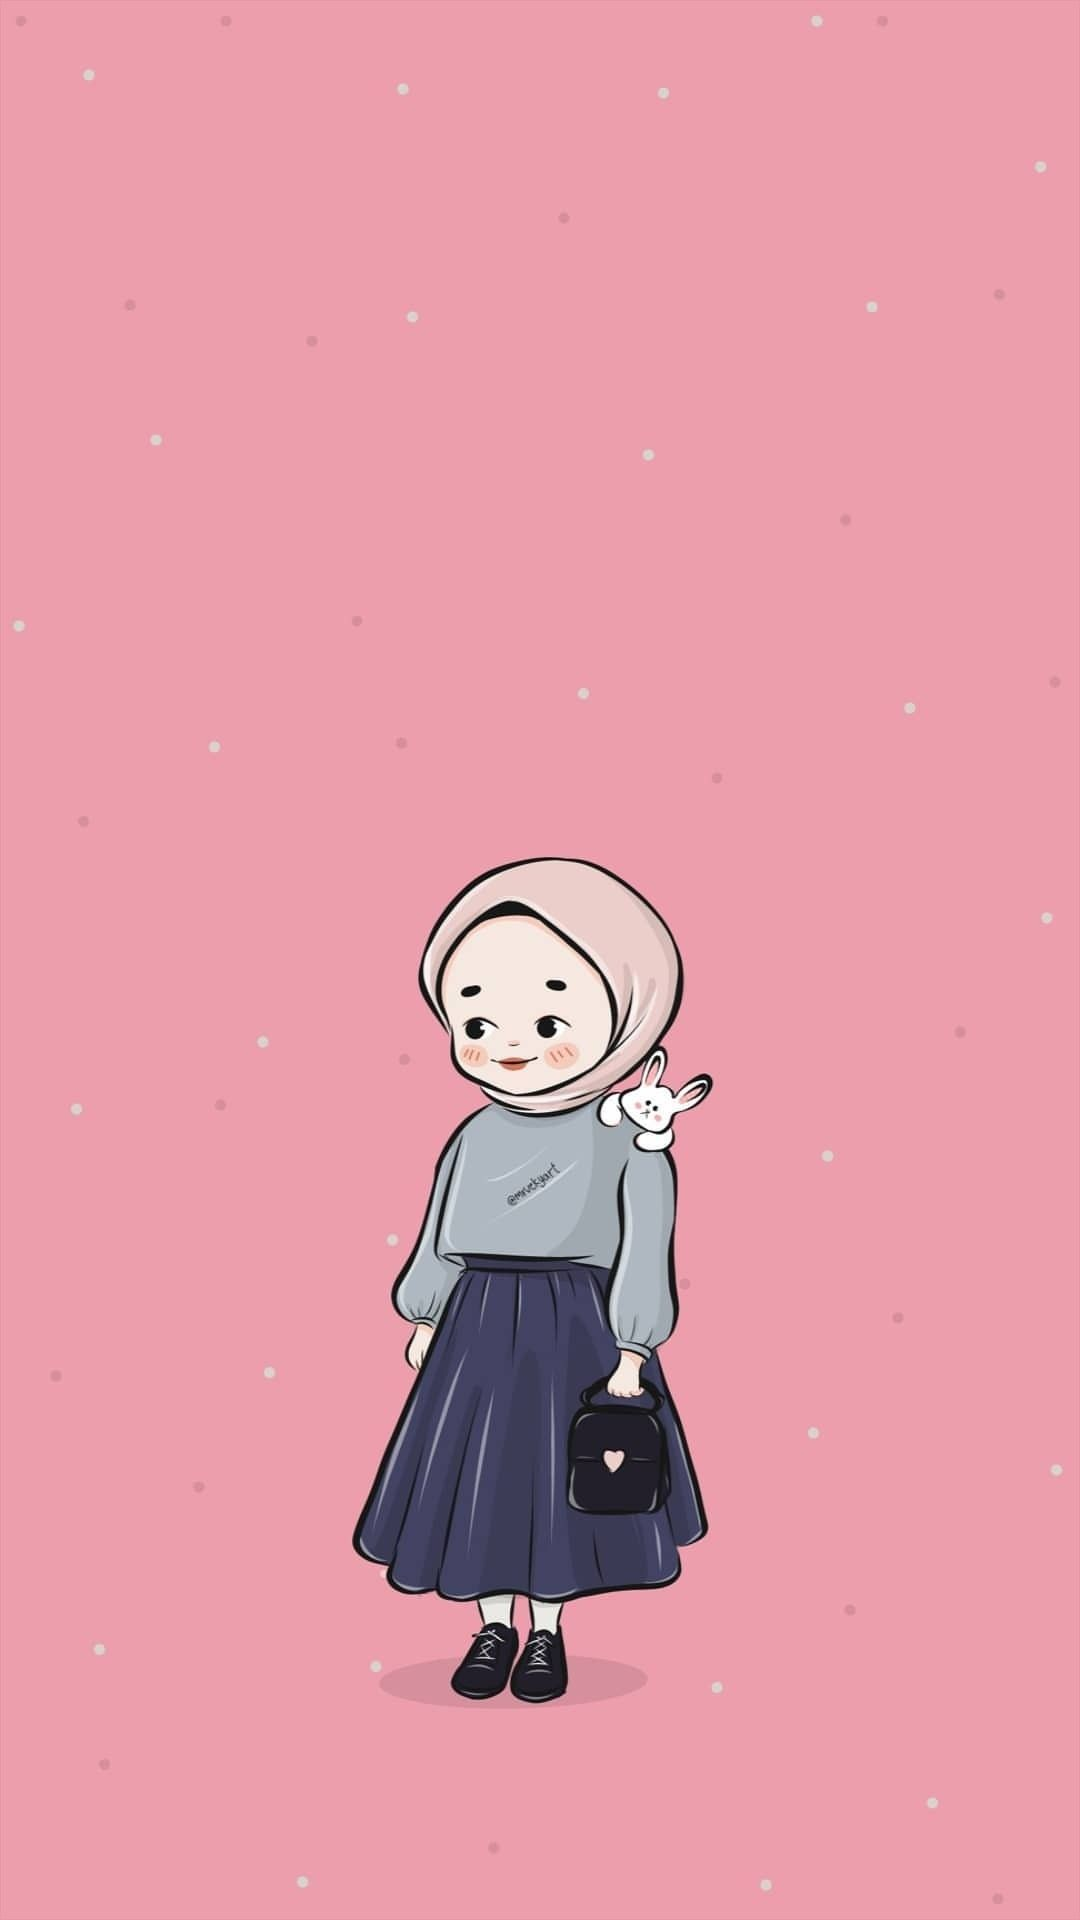 syifa jm janarimanianisr on Pinterest